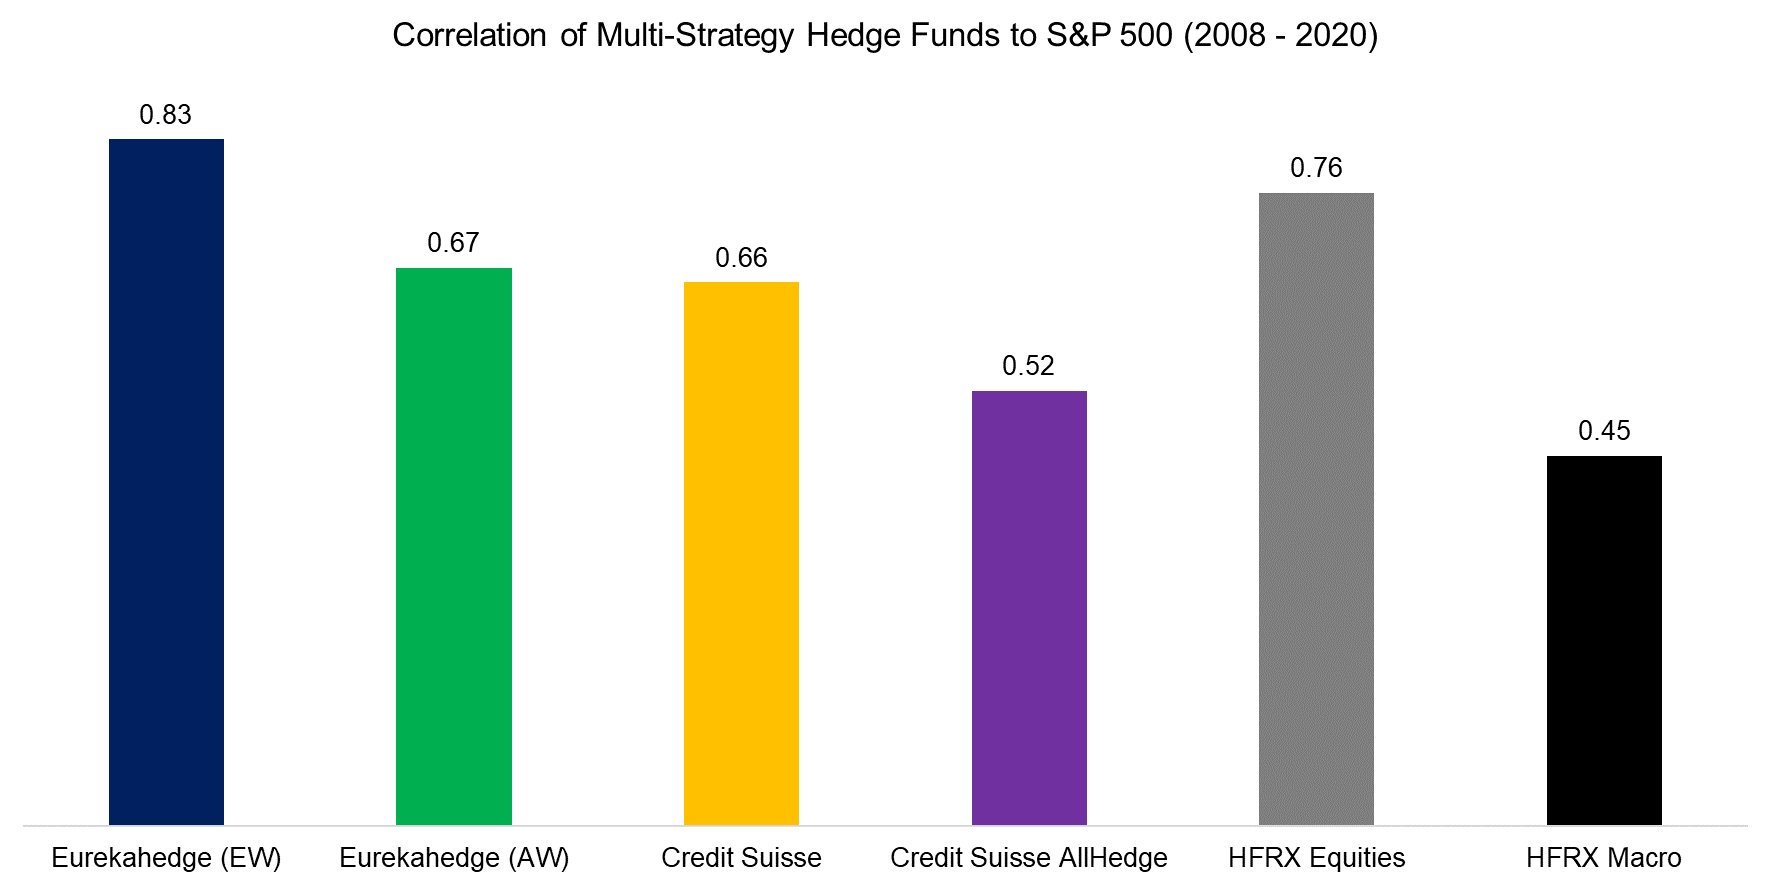 Correlation of Multi-Strategy Hedge Funds to S&P 500 (2008 - 2020)